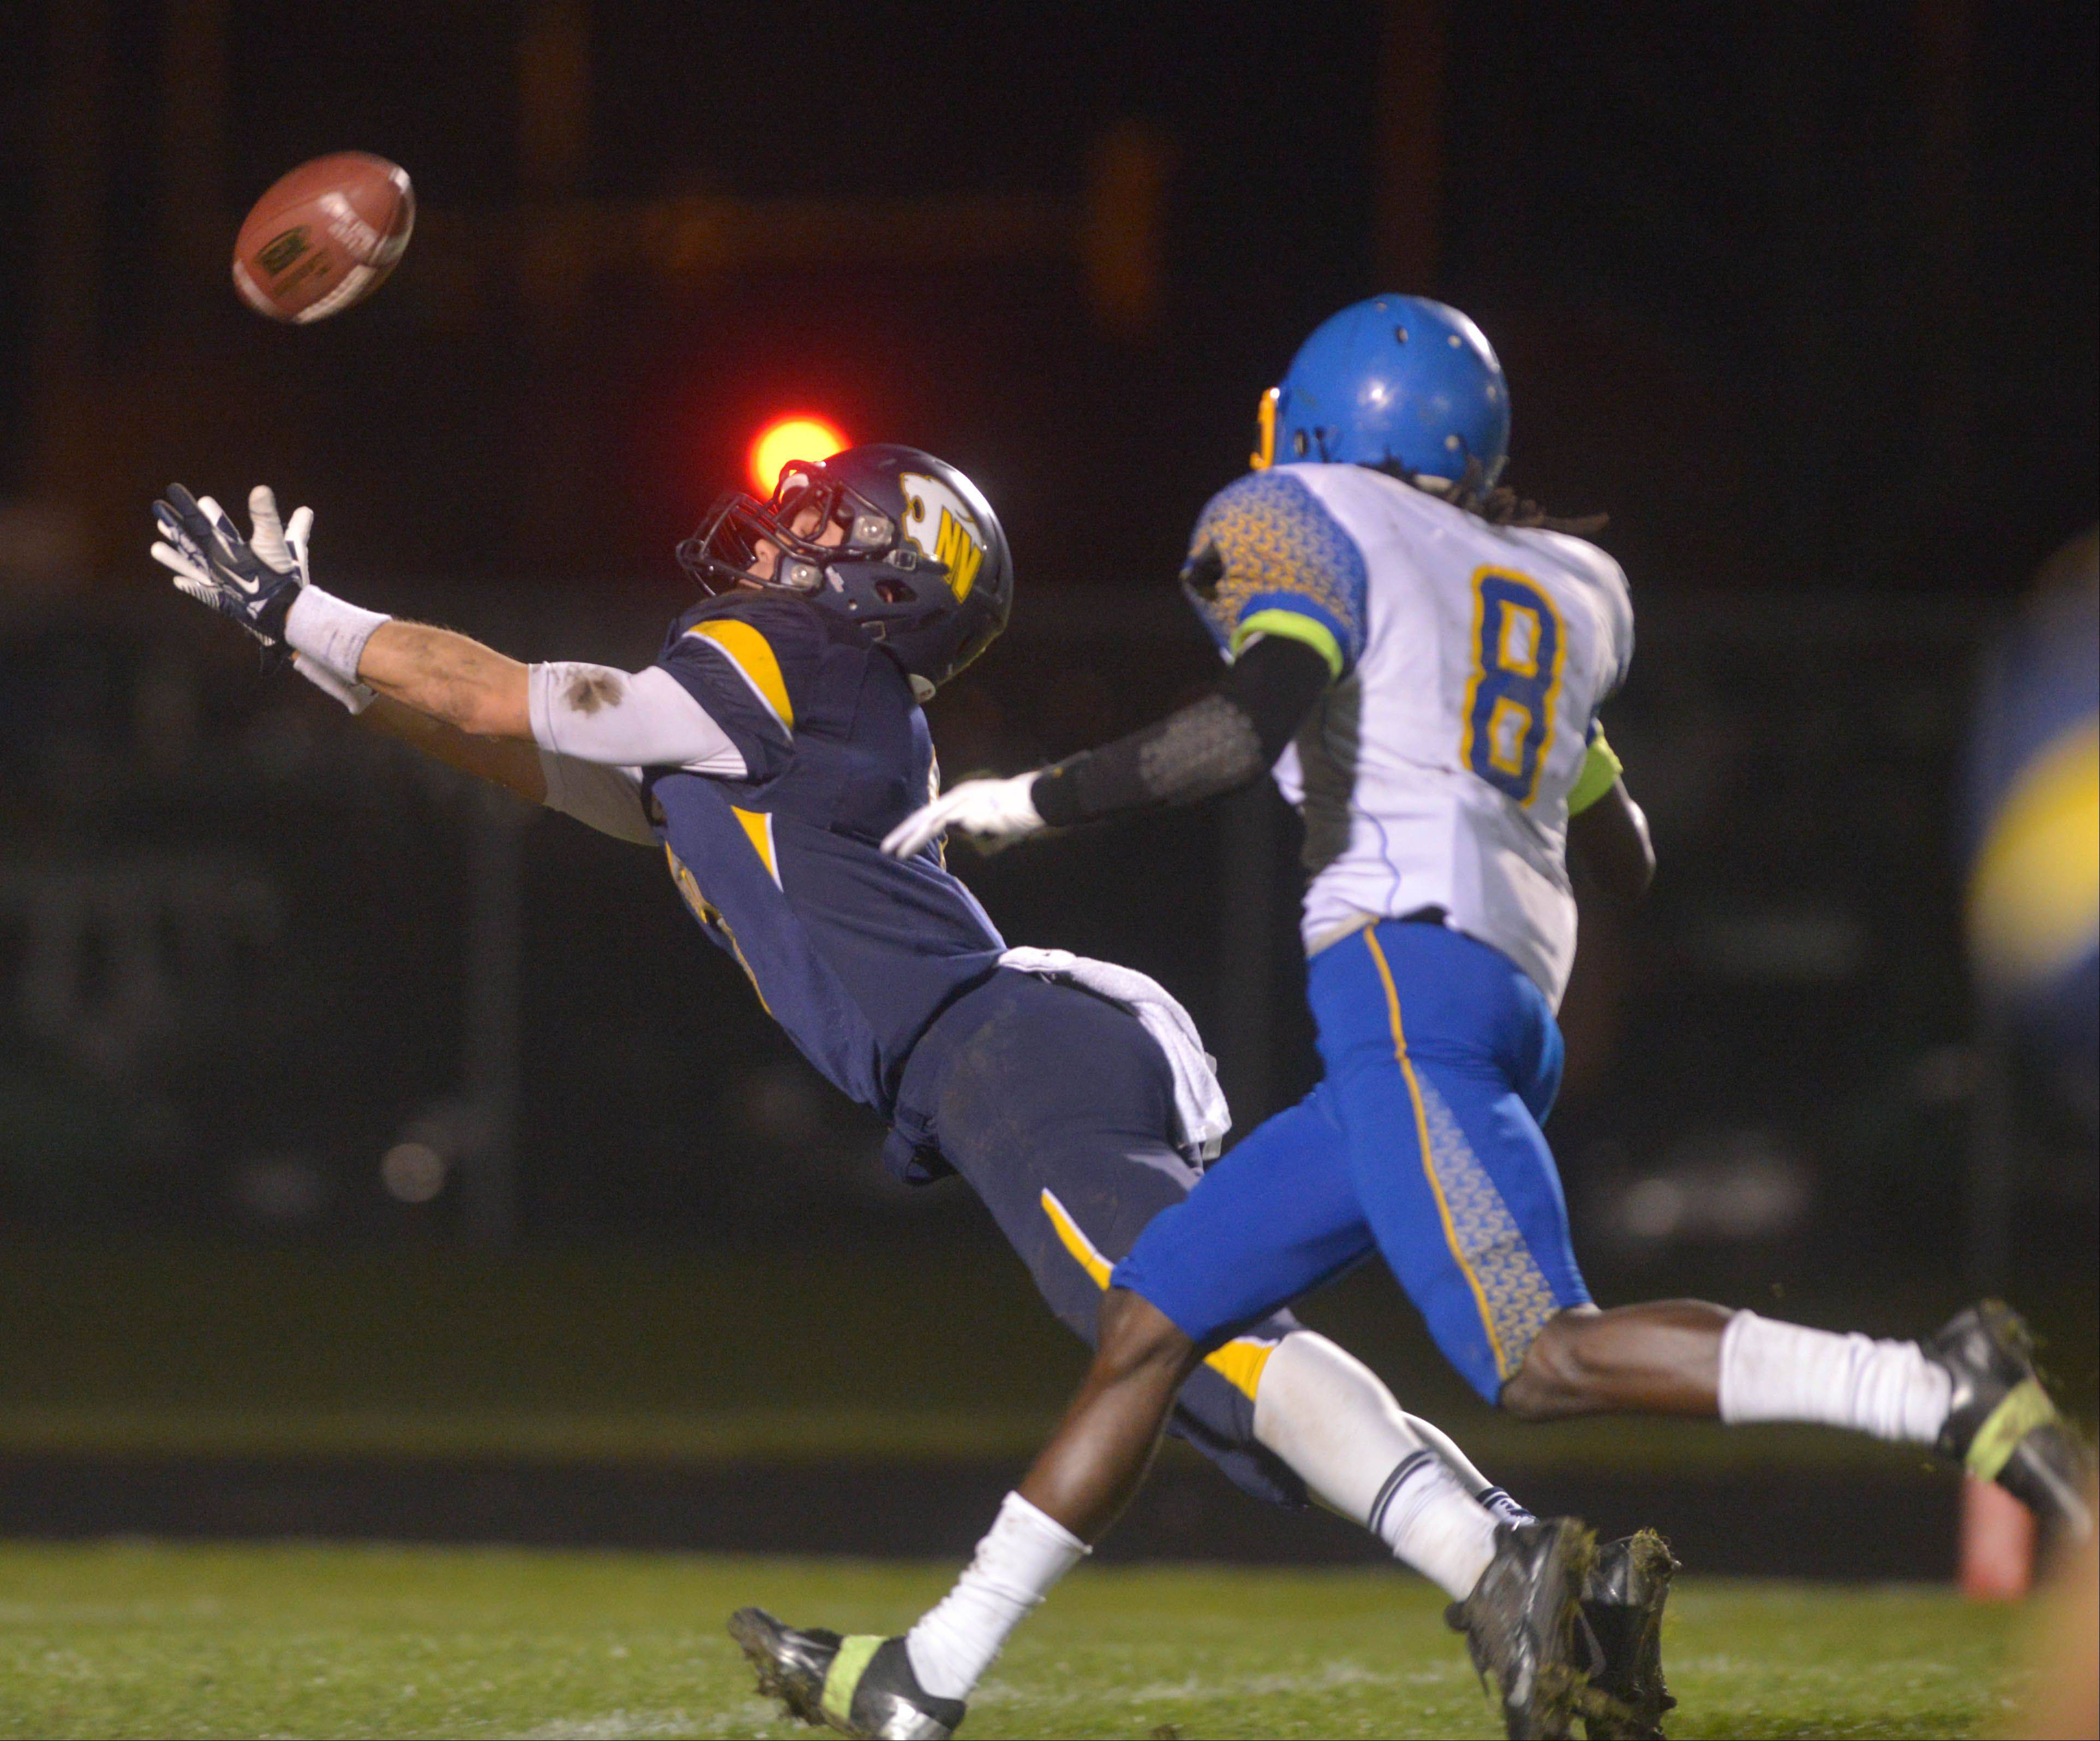 Neuqua Valley's Mikey Dudek reaches for the ball during Saturday's playoff game against Simeon.